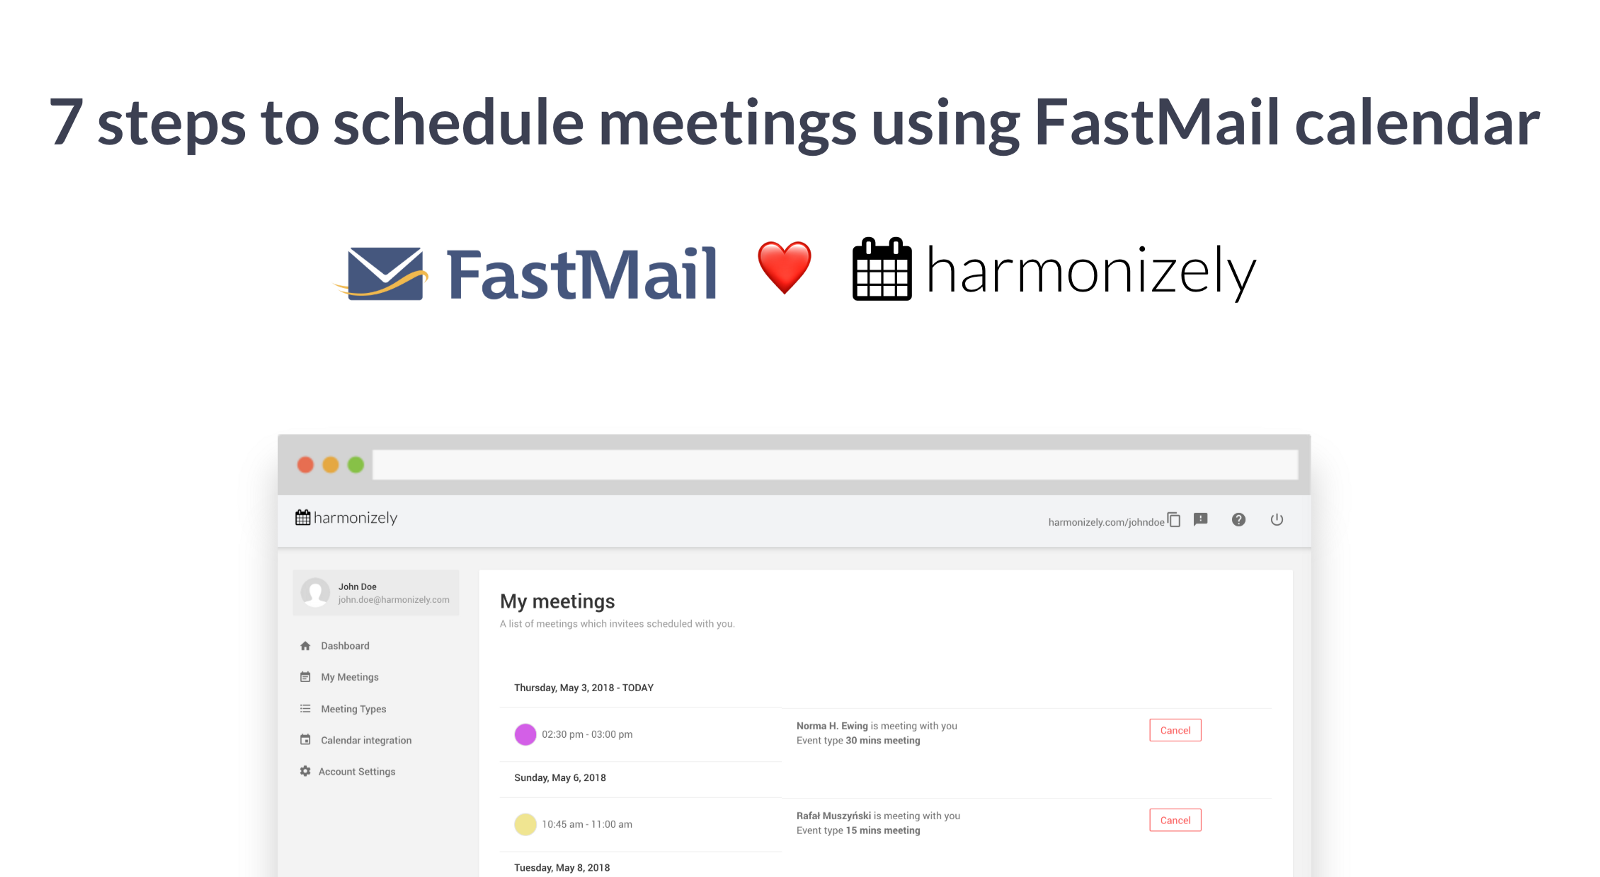 Schedule meetings using FastMail calendar